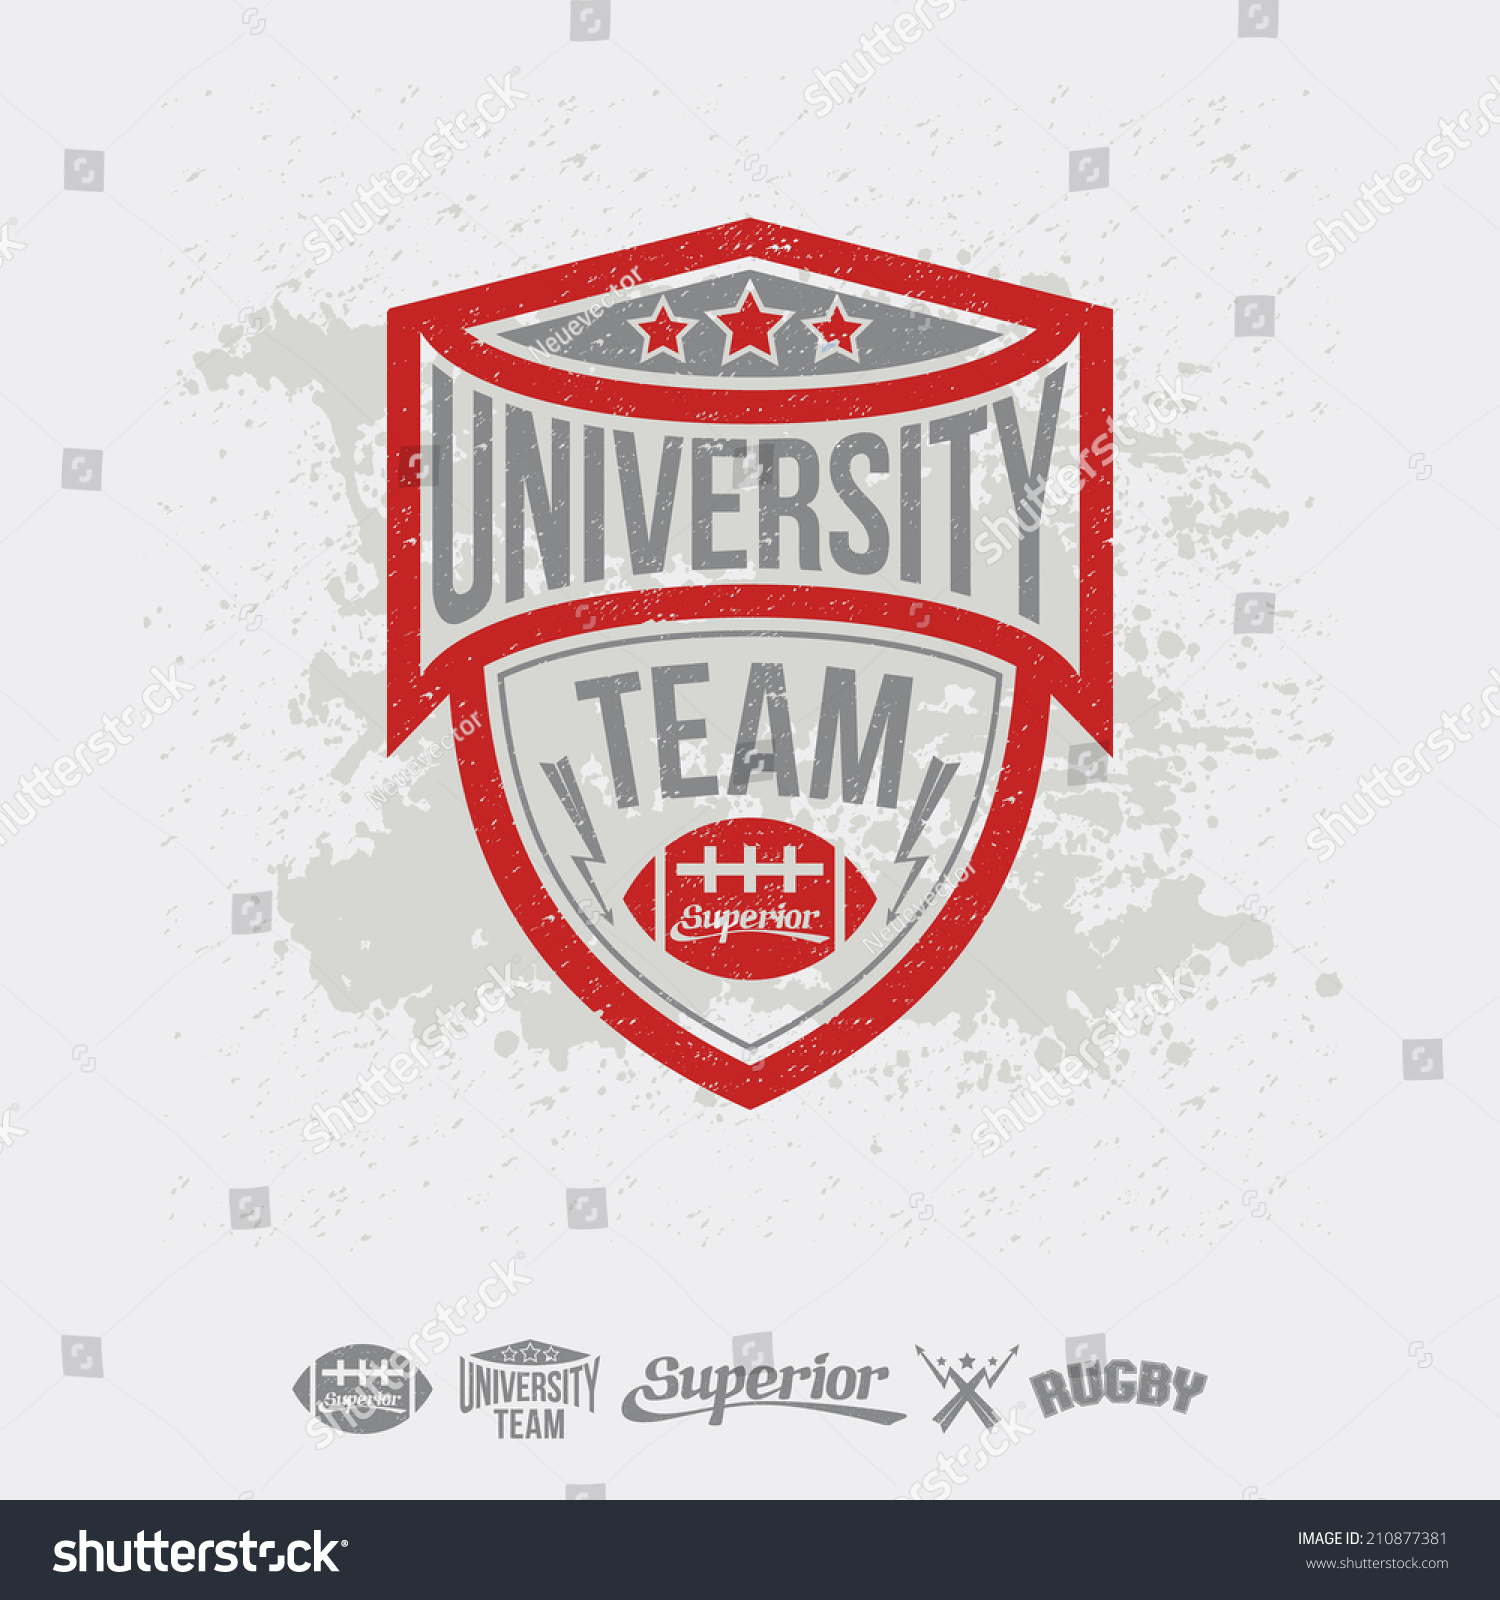 Design t shirt universiti - Design T Shirt University Rugby Emblem University Team And Design Elements Graphic Design For T